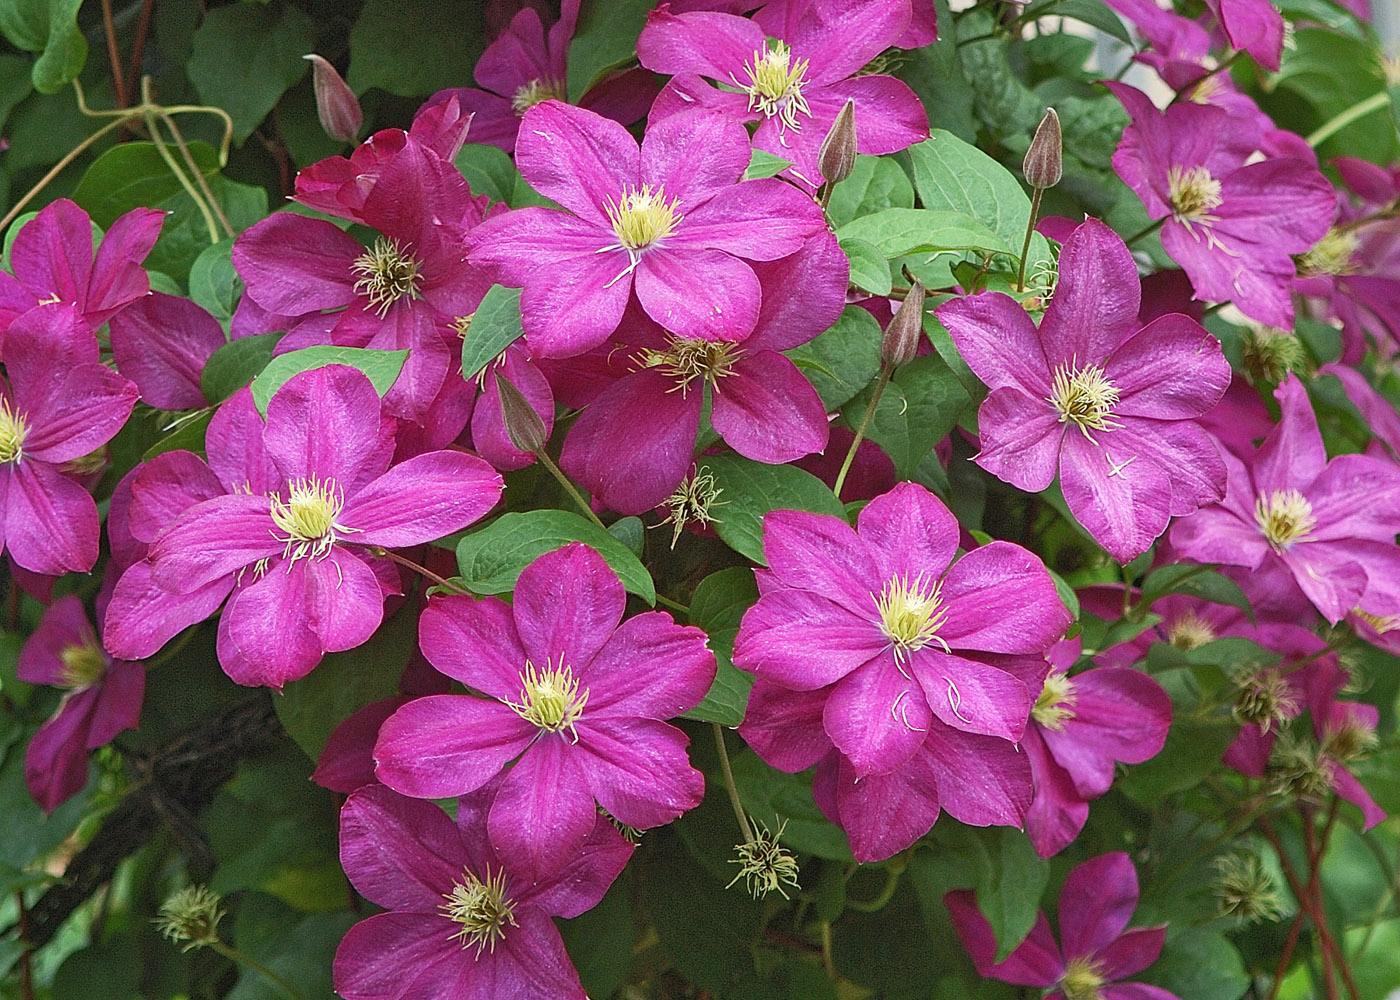 This Clematis In Madison D A Grapevine Tower Spectacular Fashion With Dozens Of Its Richly